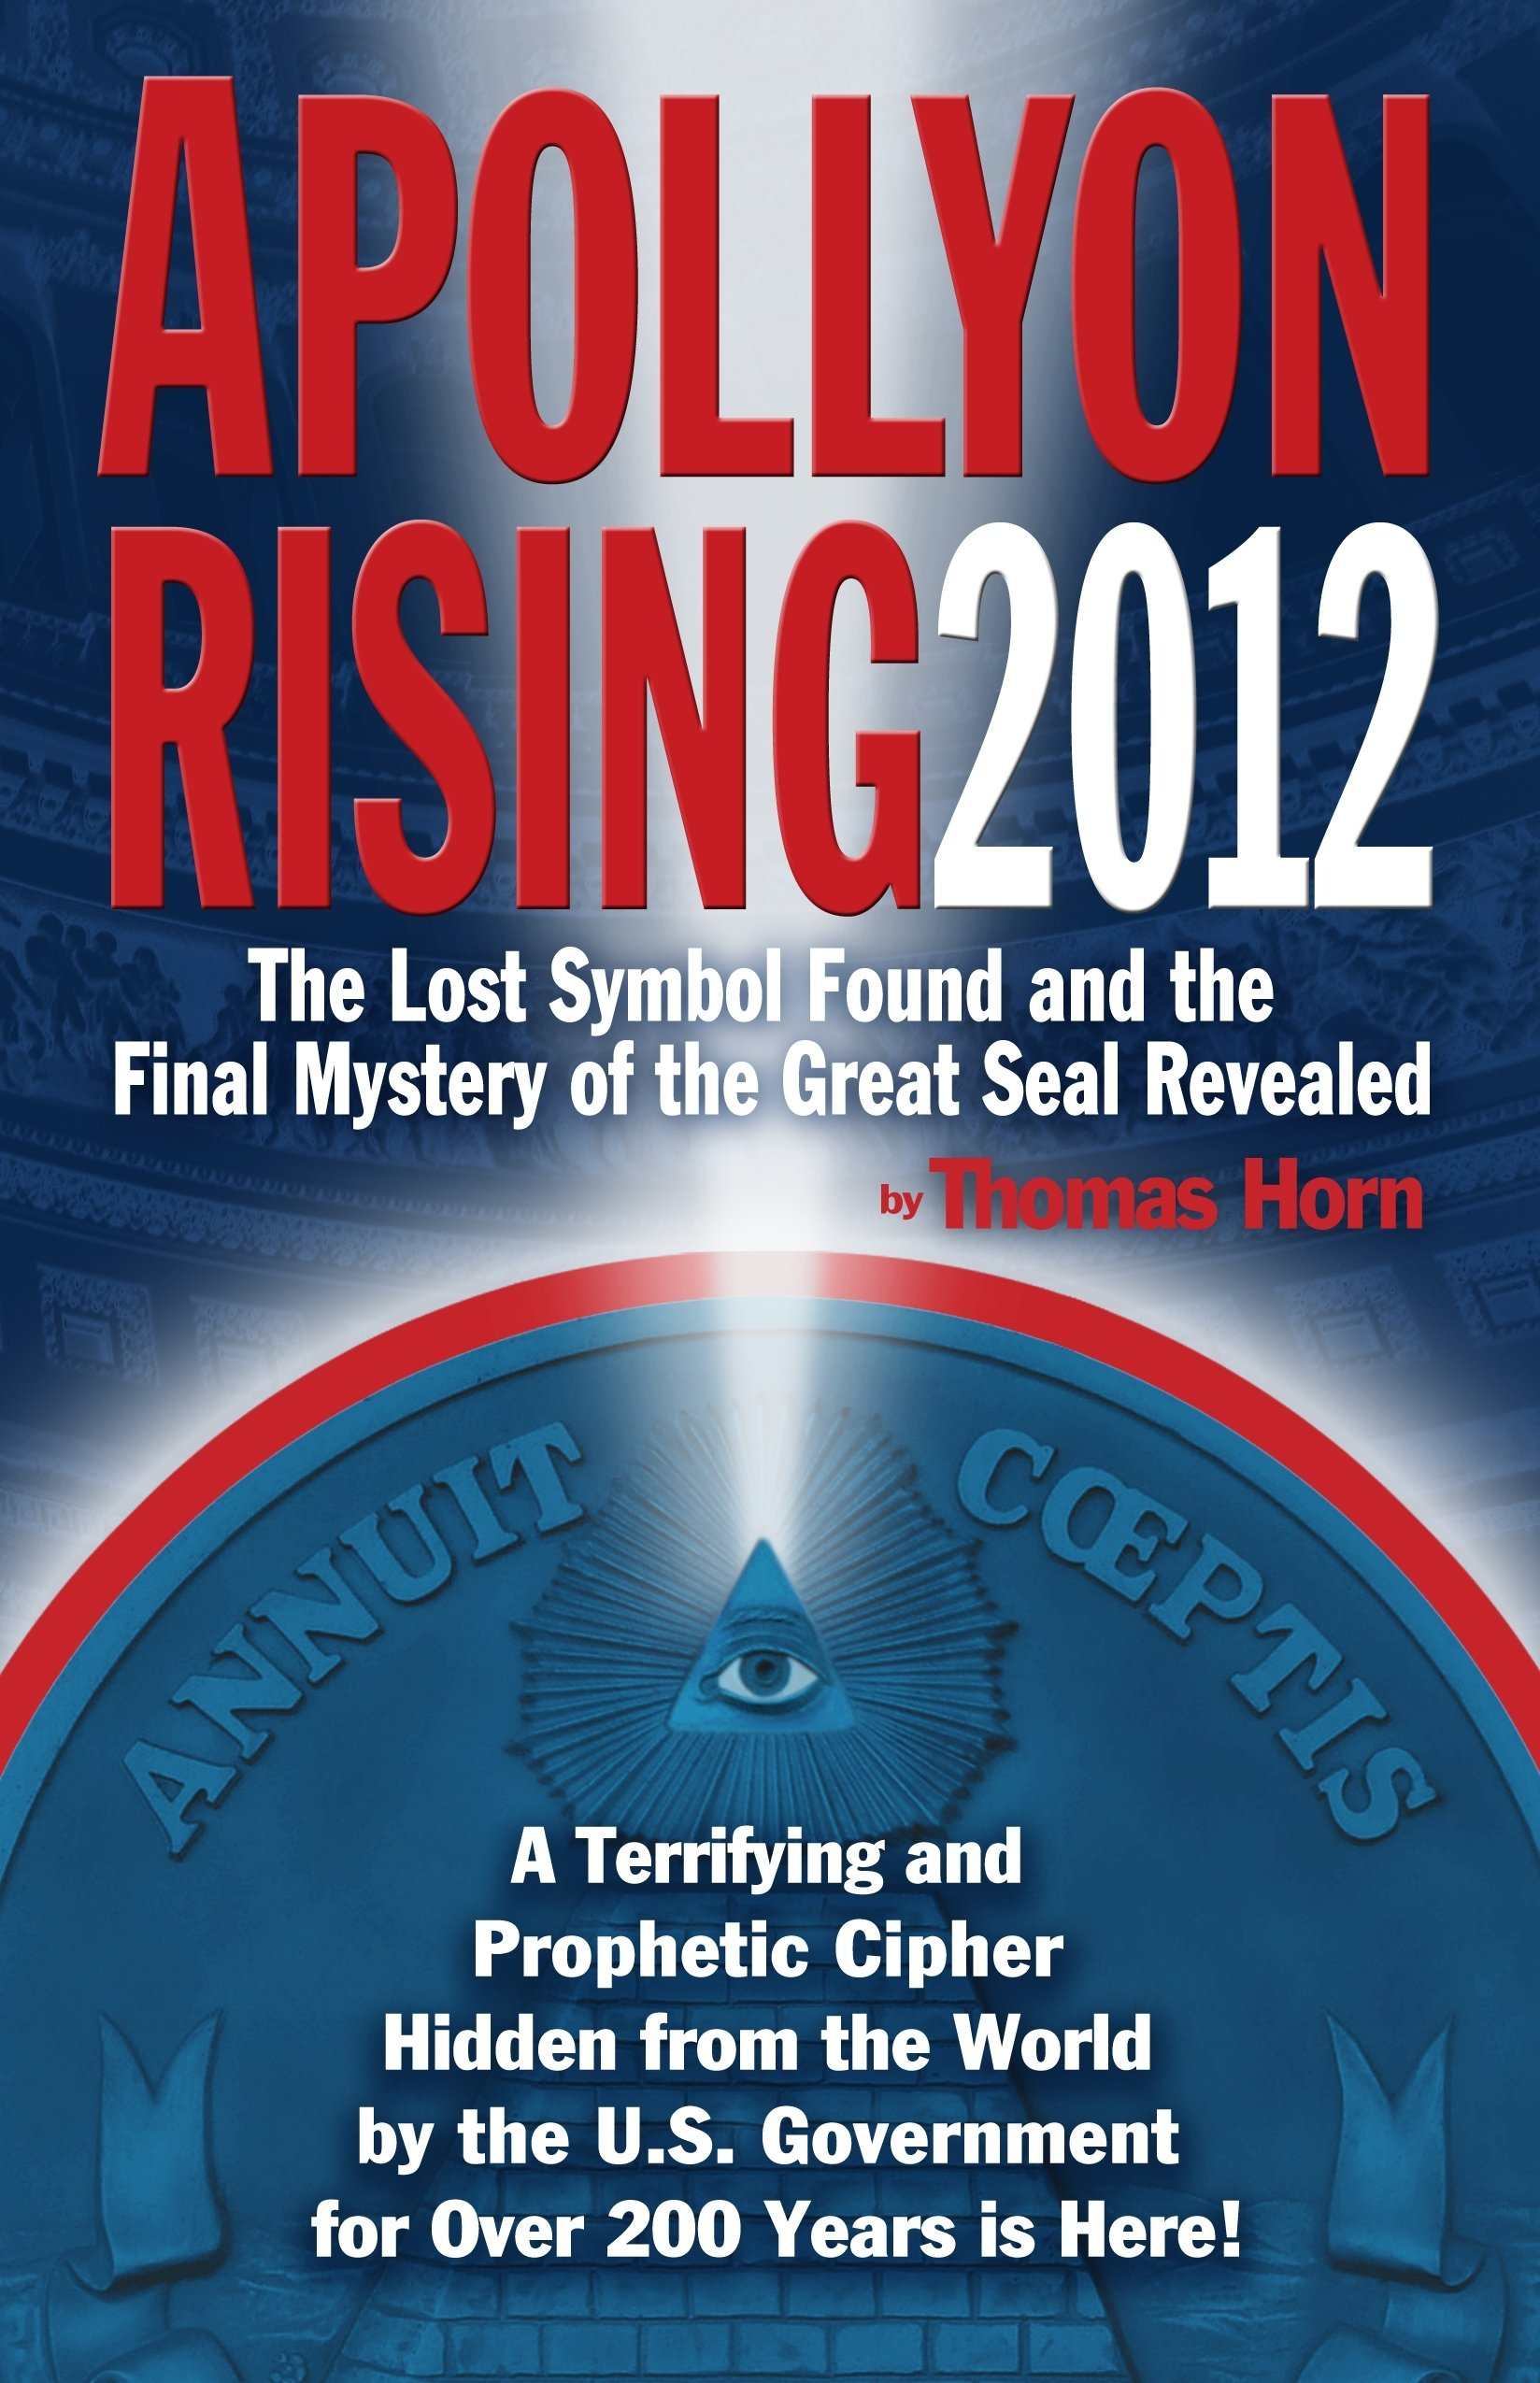 Apollyon Rising 2012 The Lost Symbol Found And The Final Mystery Of